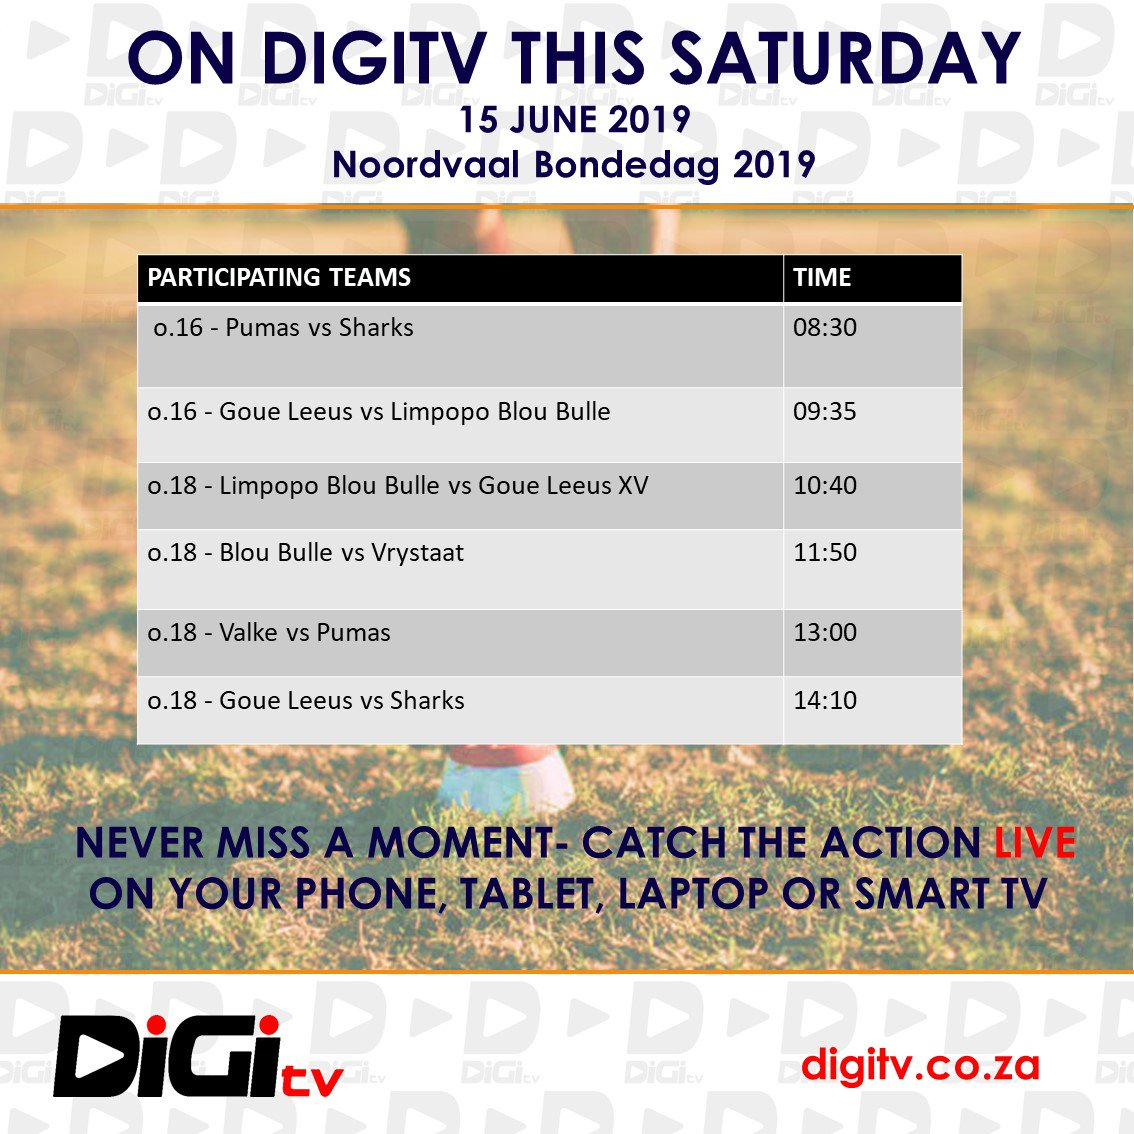 D87iGTRW4AAPm6m School of Rugby | School Rugby Results - 6 April 2019 - School of Rugby